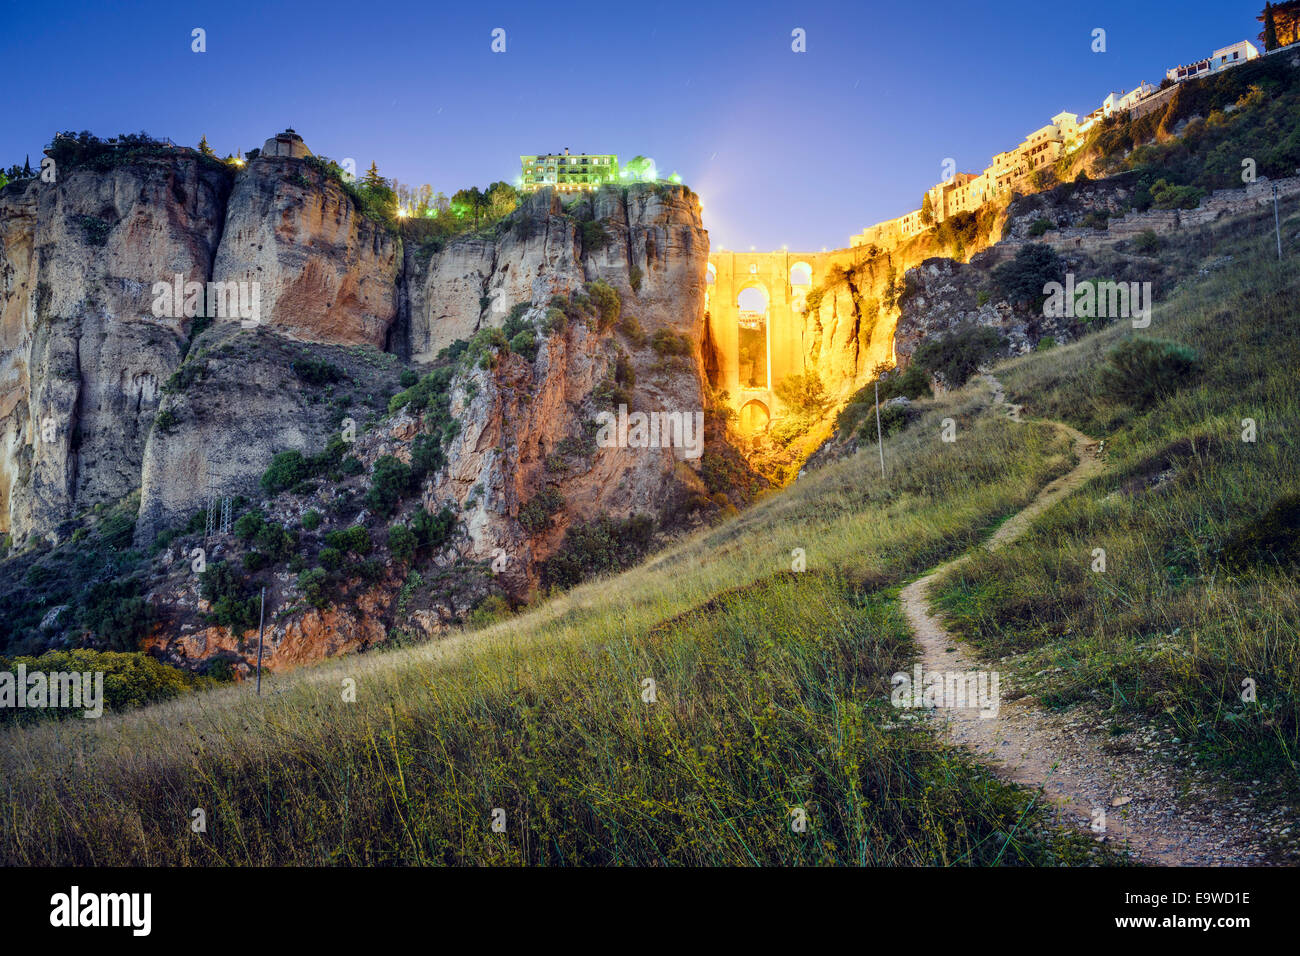 Ronda, Spain at Puente Nuevo Bridge. - Stock Image